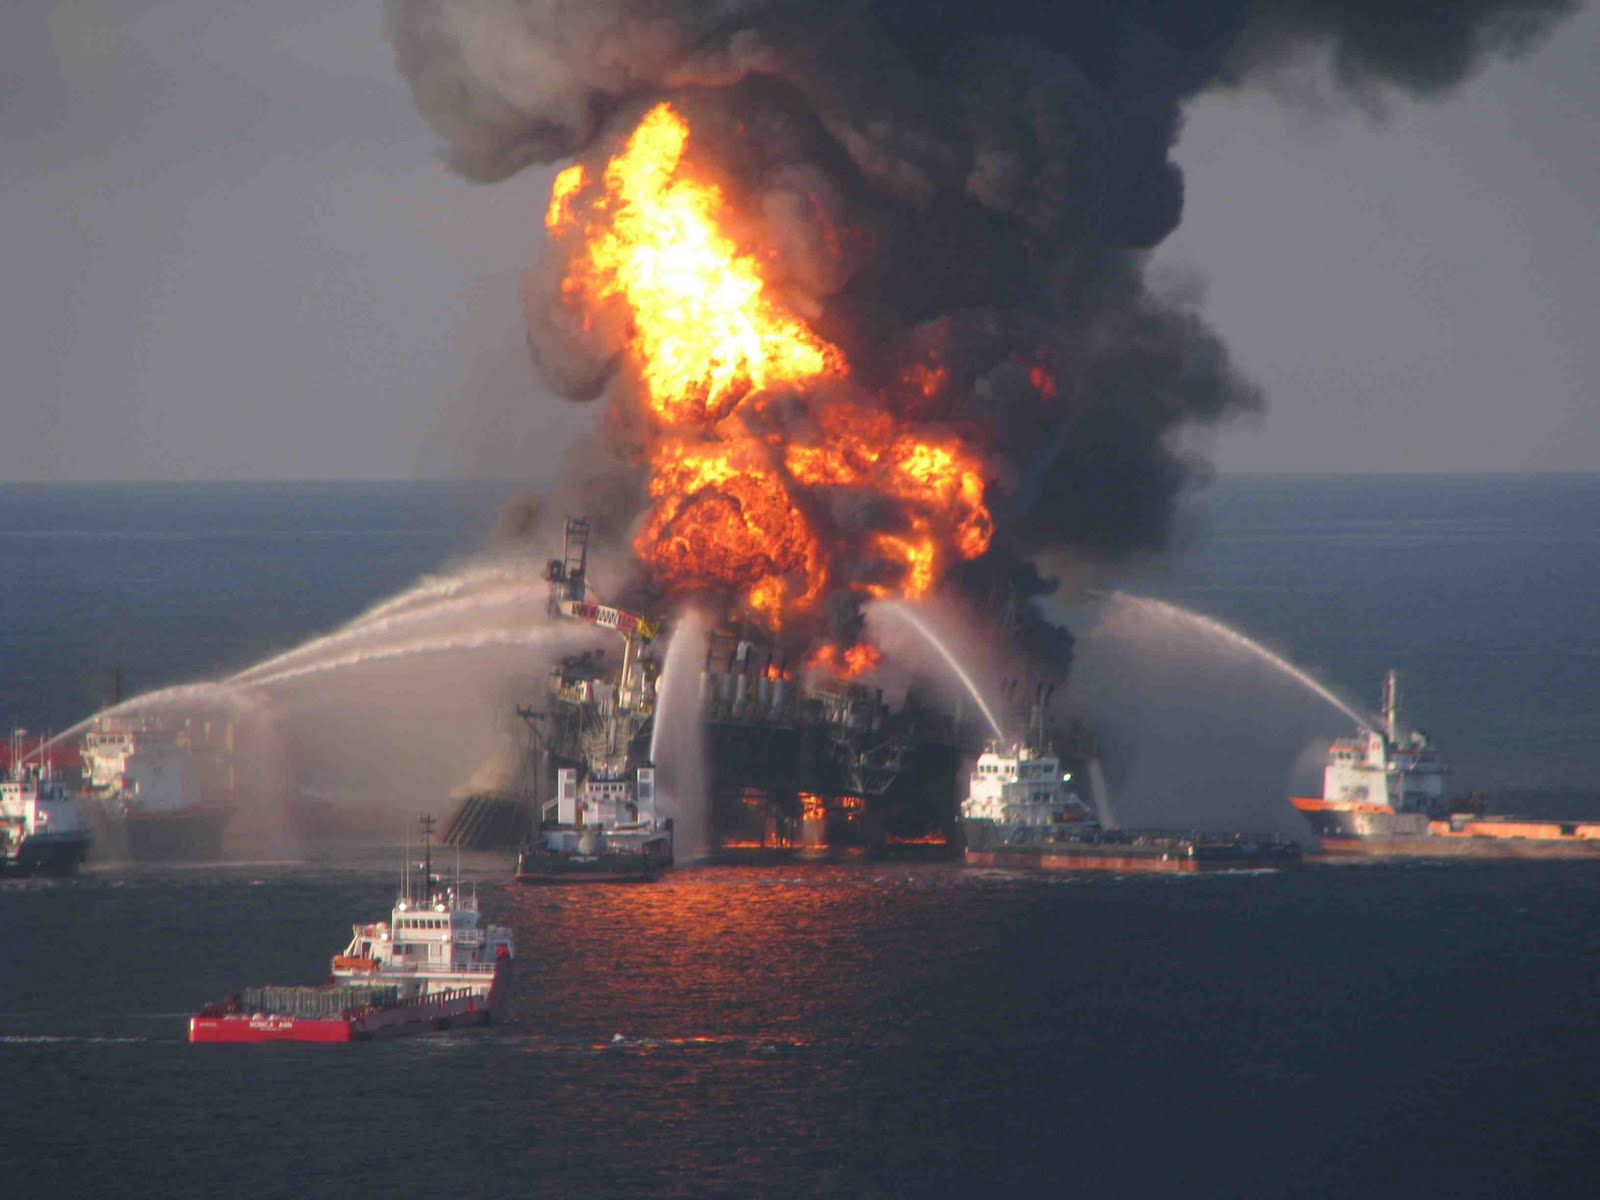 bp oil spill crisis management case study Case study: bp oil spill bp oil spill also called the deepwater horizon oil spill was an oil spill in the gulf of mexico near mississippi river.